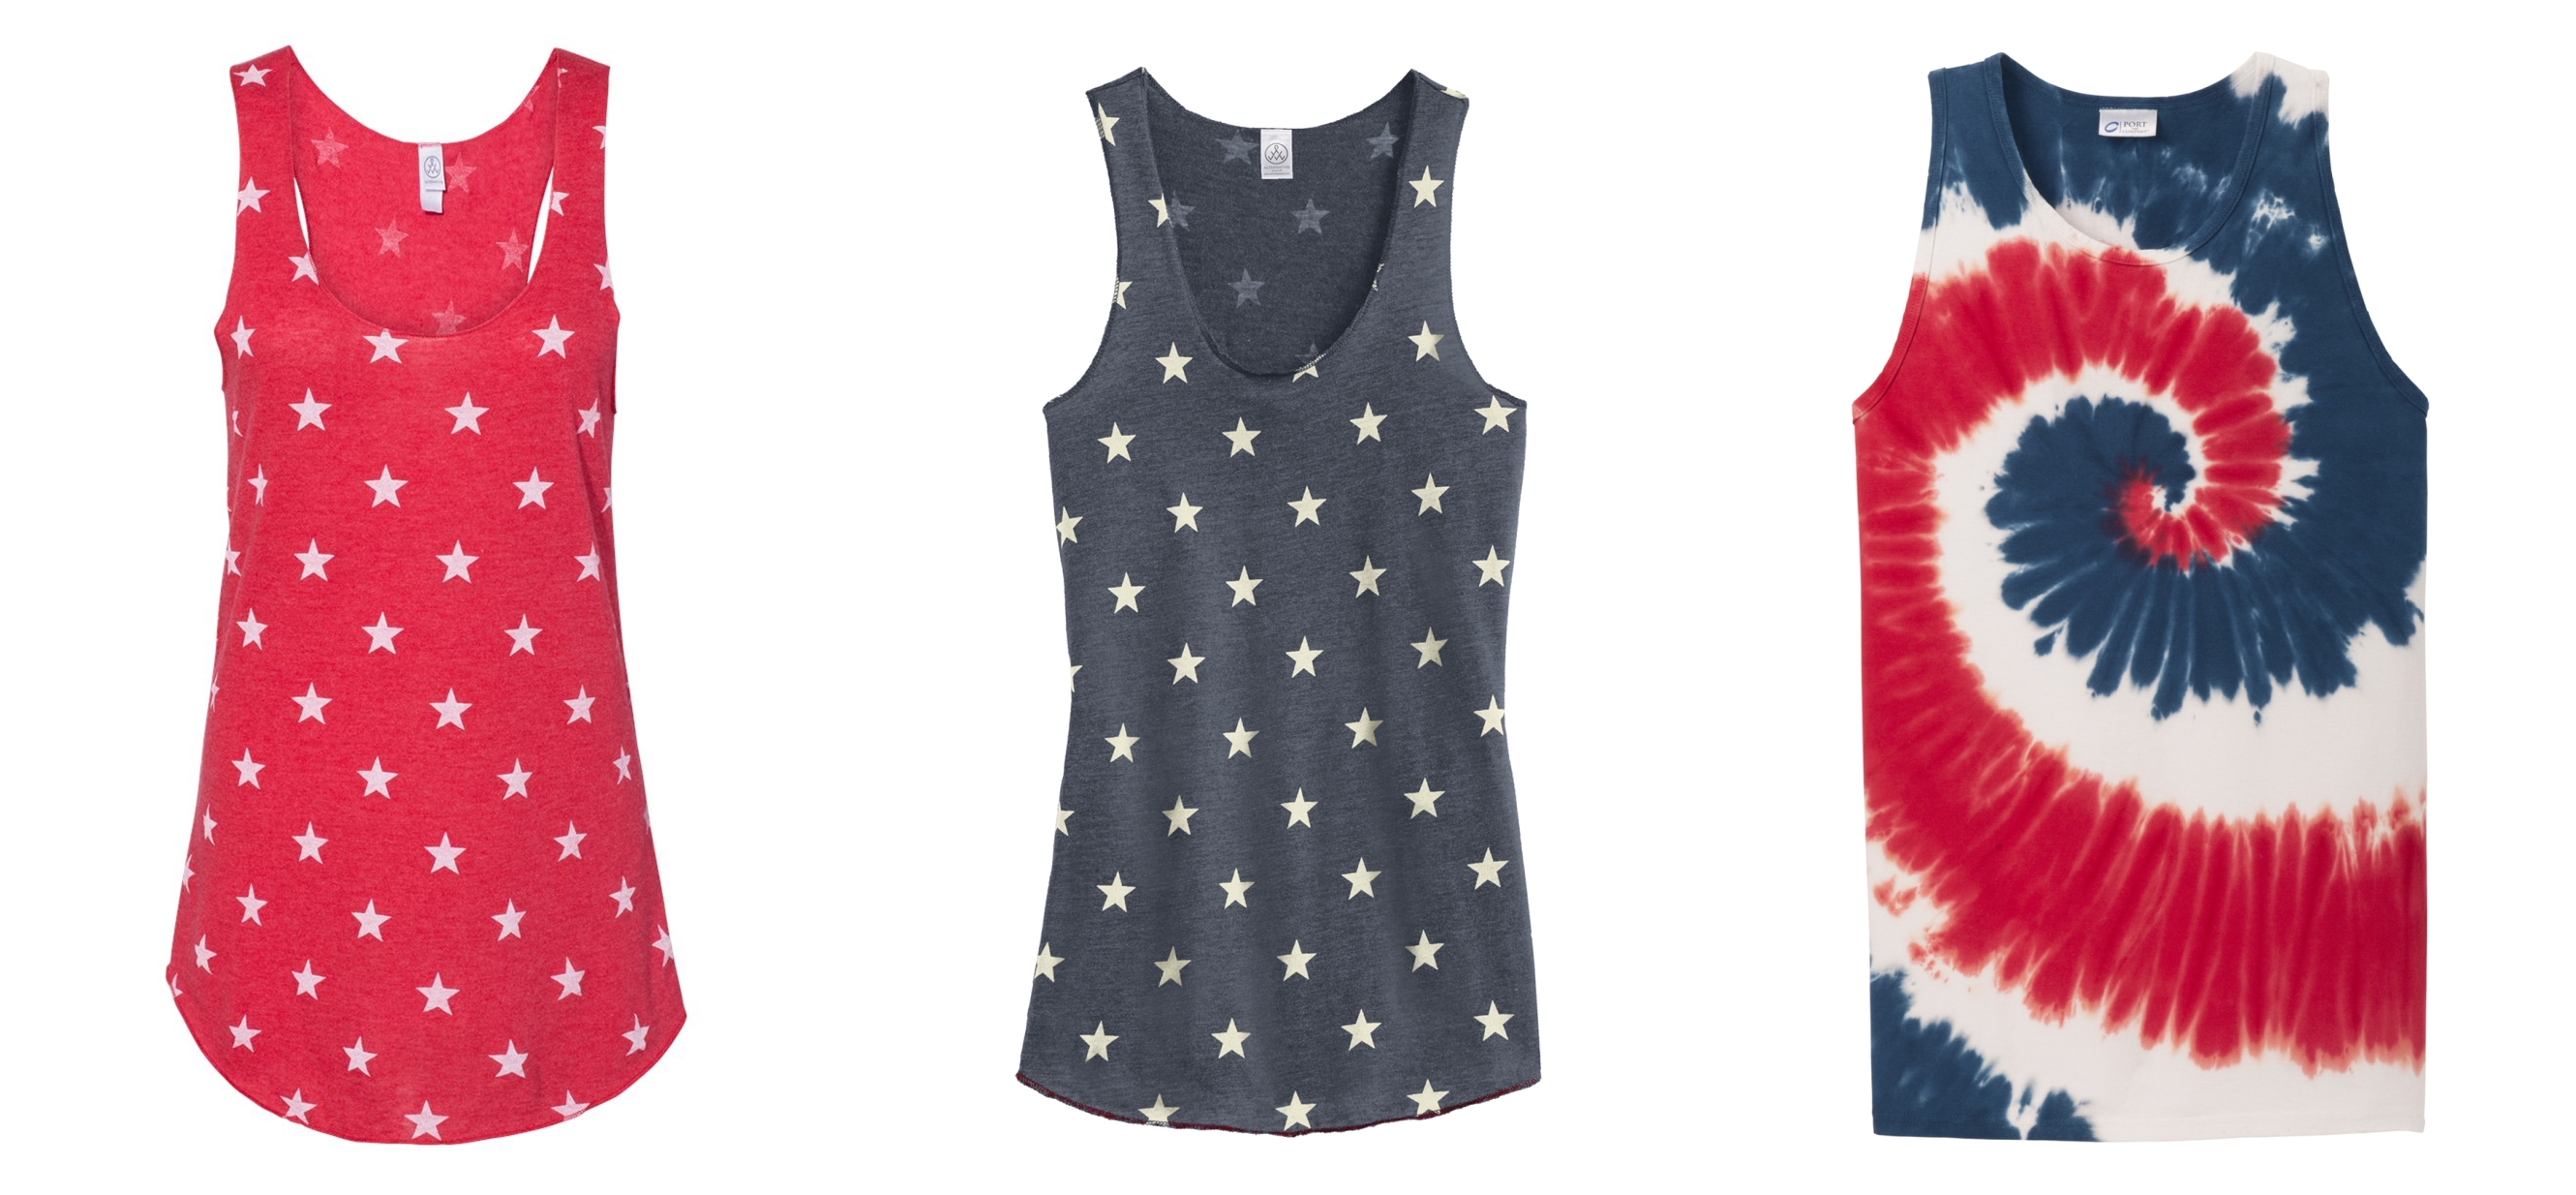 Tank Tops for 4th of July from NYFifth